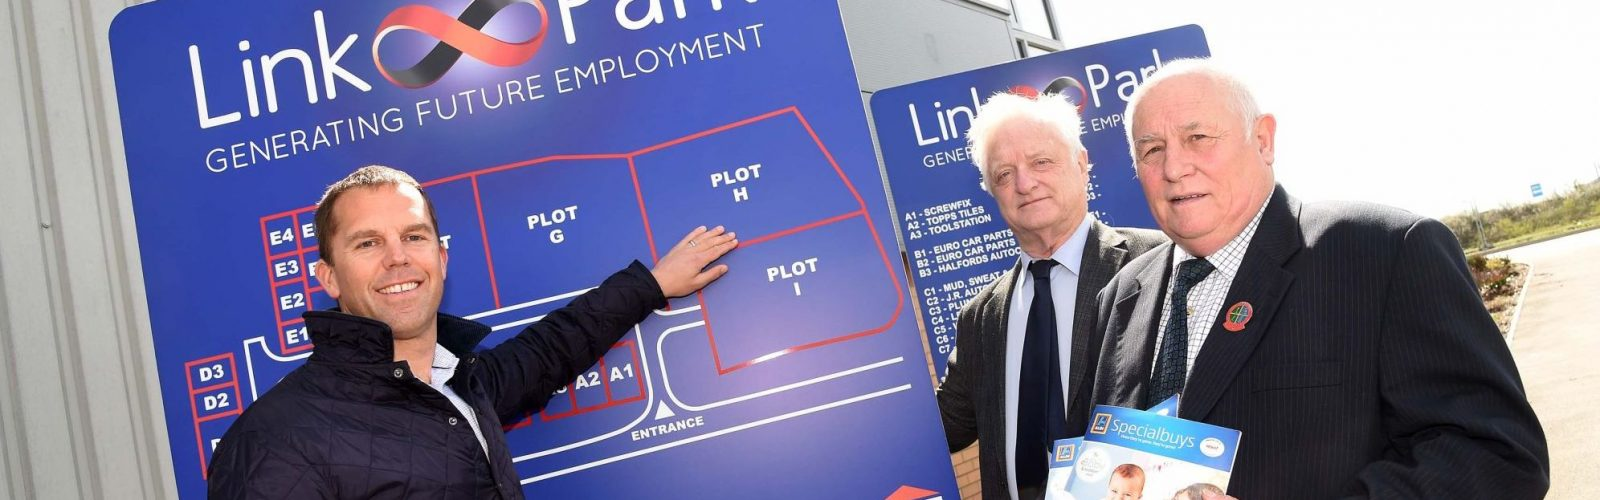 Aldi To Open New Store At Link Park Weymouth Dj Property The No